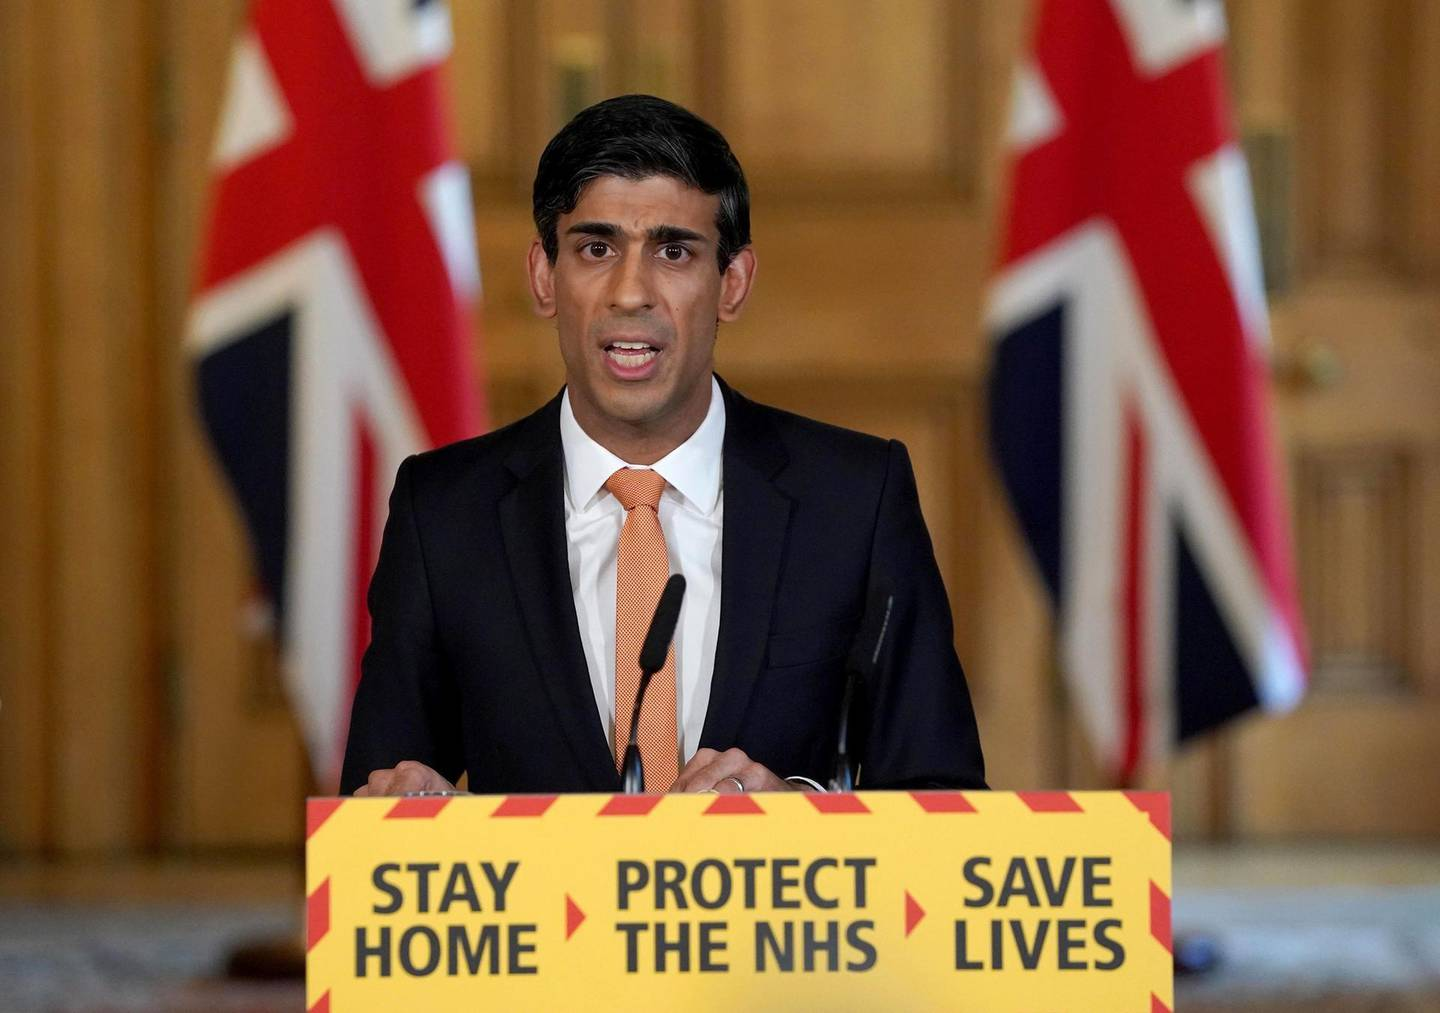 """A handout image released by 10 Downing Street, shows Britain's Chancellor of the Exchequer Rishi Sunak speaking during a remote press conference to update the nation on the COVID-19 pandemic, inside 10 Downing Street in central London on April 8, 2020. Britain's Prime Minister Boris Johnson was """"responding to treatment"""", his spokesman said Wednesday, as the 55-year-old leader spent a third day in intensive care battling the coronavirus.  - RESTRICTED TO EDITORIAL USE - MANDATORY CREDIT """"AFP PHOTO / 10 DOWNING STREET / PIPPA FOWLES"""" - NO MARKETING - NO ADVERTISING CAMPAIGNS - DISTRIBUTED AS A SERVICE TO CLIENTS  / AFP / 10 Downing Street / Pippa FOWLES / RESTRICTED TO EDITORIAL USE - MANDATORY CREDIT """"AFP PHOTO / 10 DOWNING STREET / PIPPA FOWLES"""" - NO MARKETING - NO ADVERTISING CAMPAIGNS - DISTRIBUTED AS A SERVICE TO CLIENTS"""